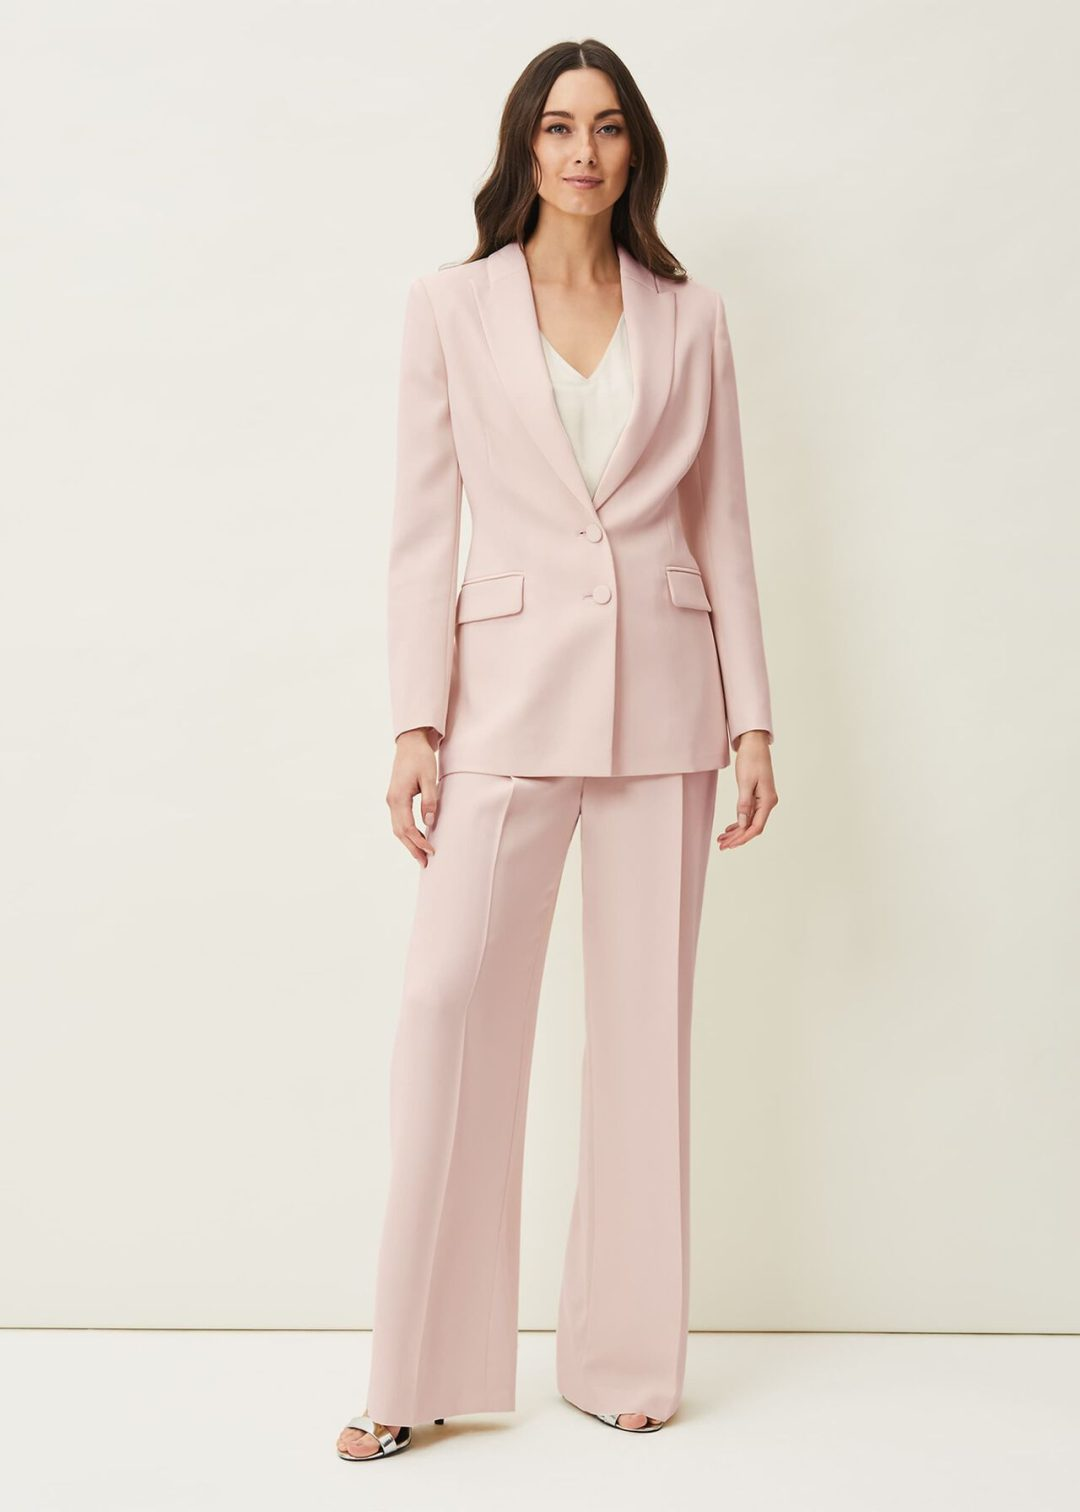 Light pink pant suit for mother of groom